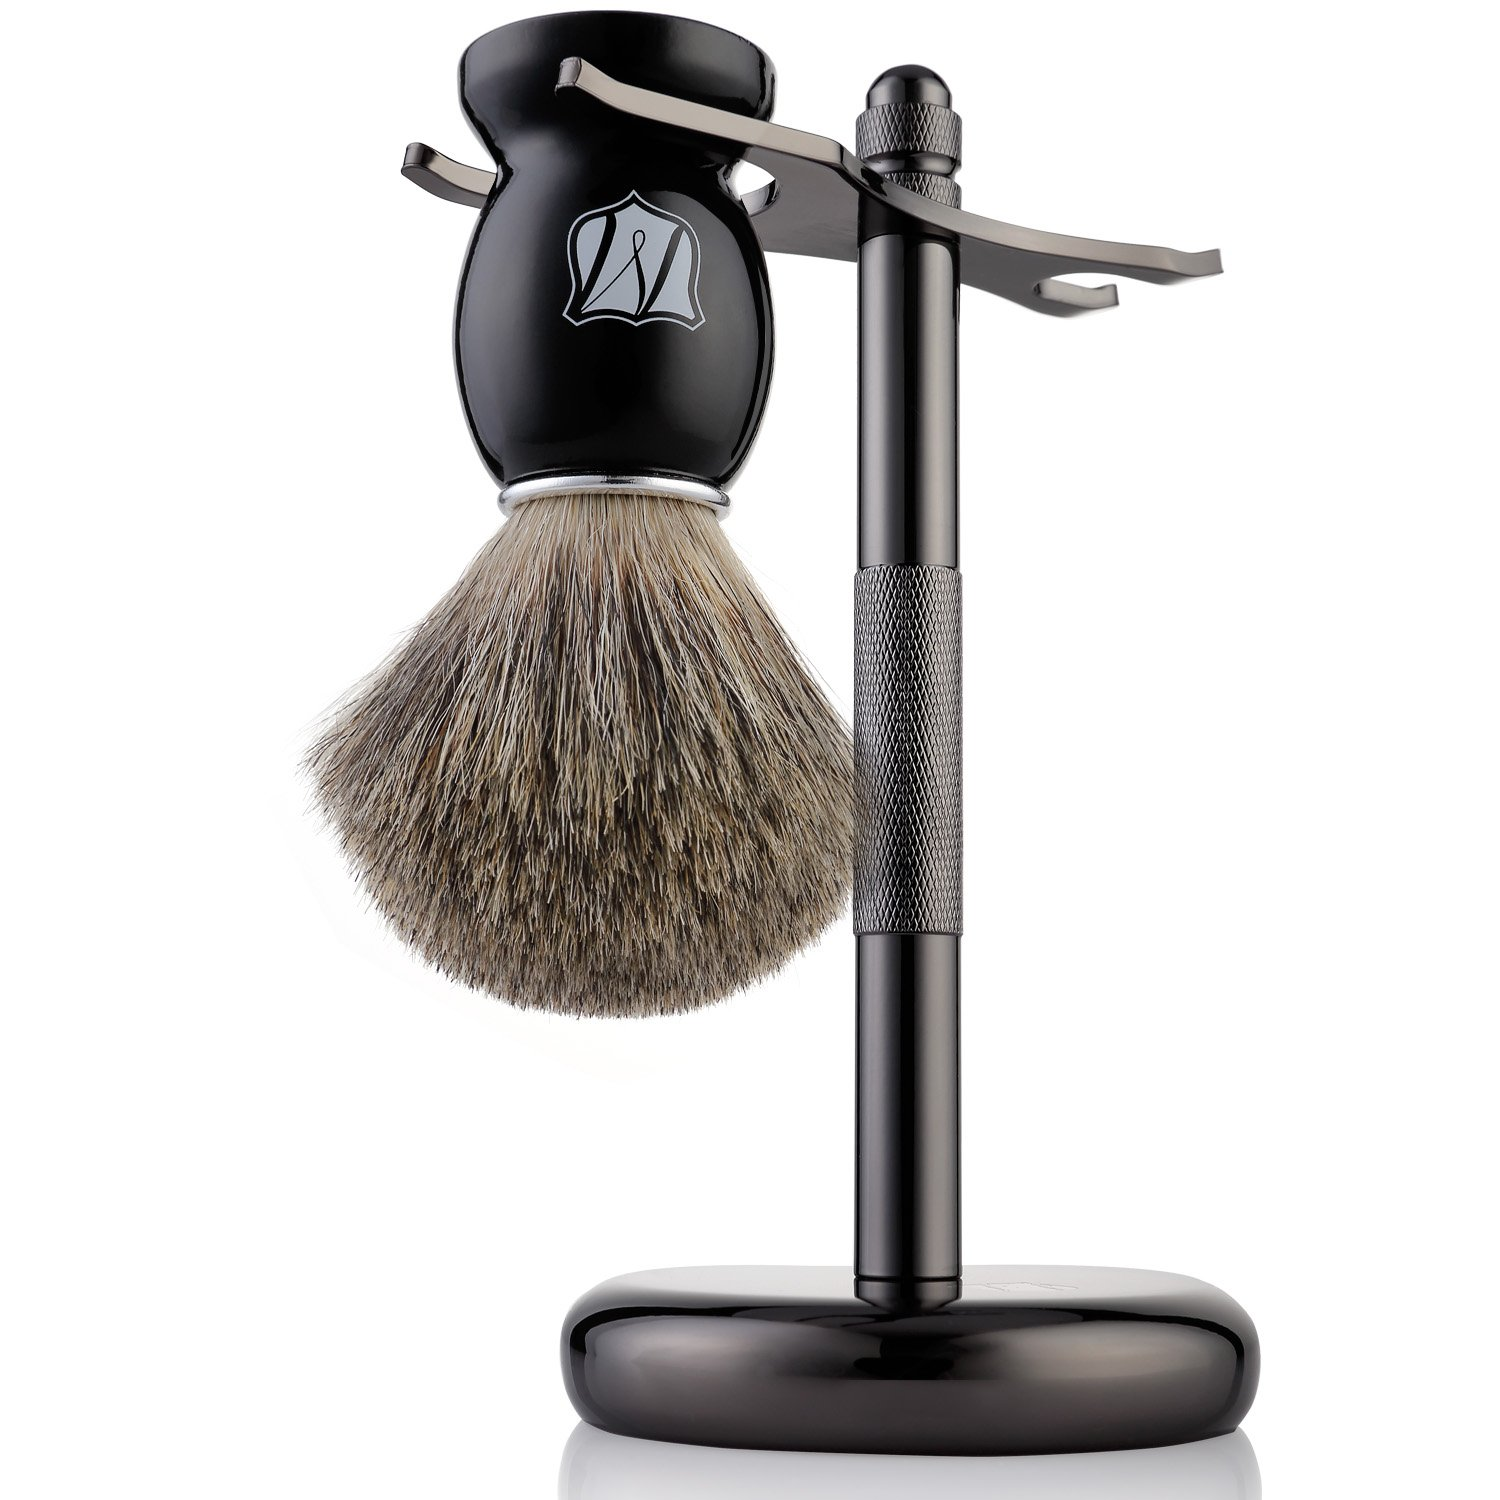 Miusco Natural Badger Hair Shaving Brush and Stand Set, Dark Chrome, Compatible with Safety Razor and Gillette Razor